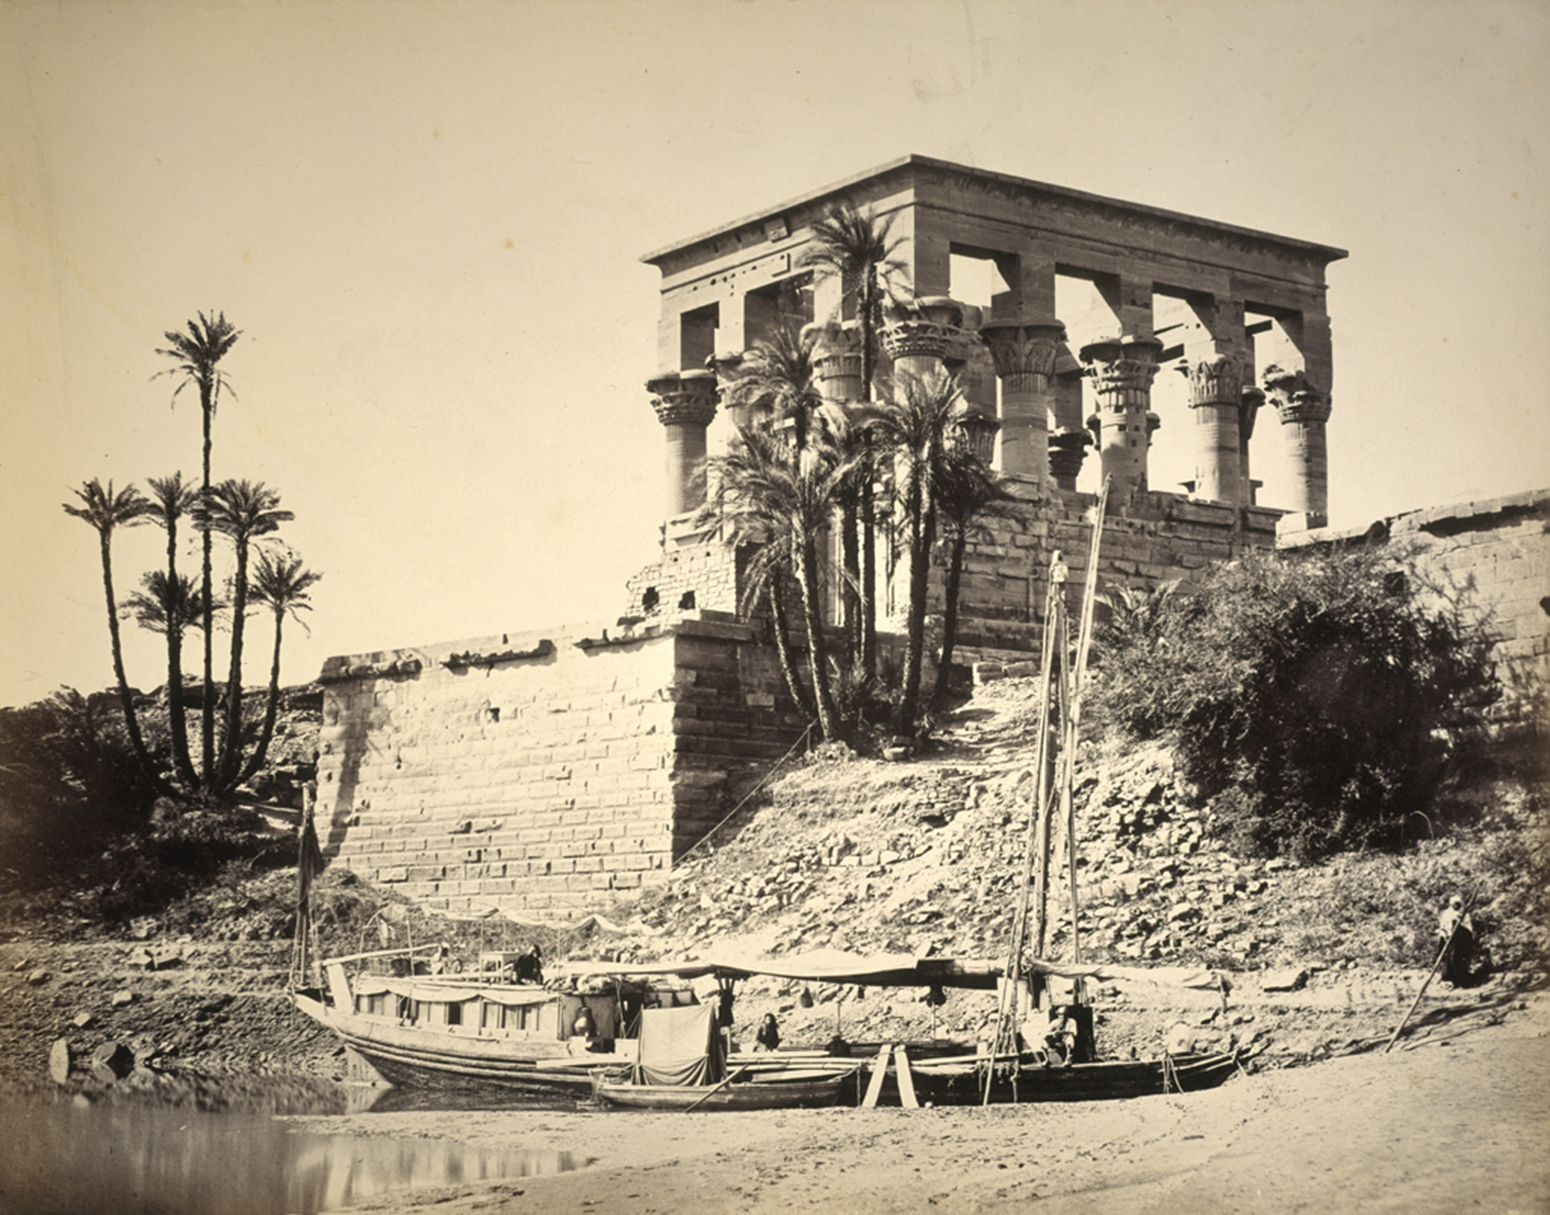 A photo of Hypaethral Temple in 1857 by Francis Frith.